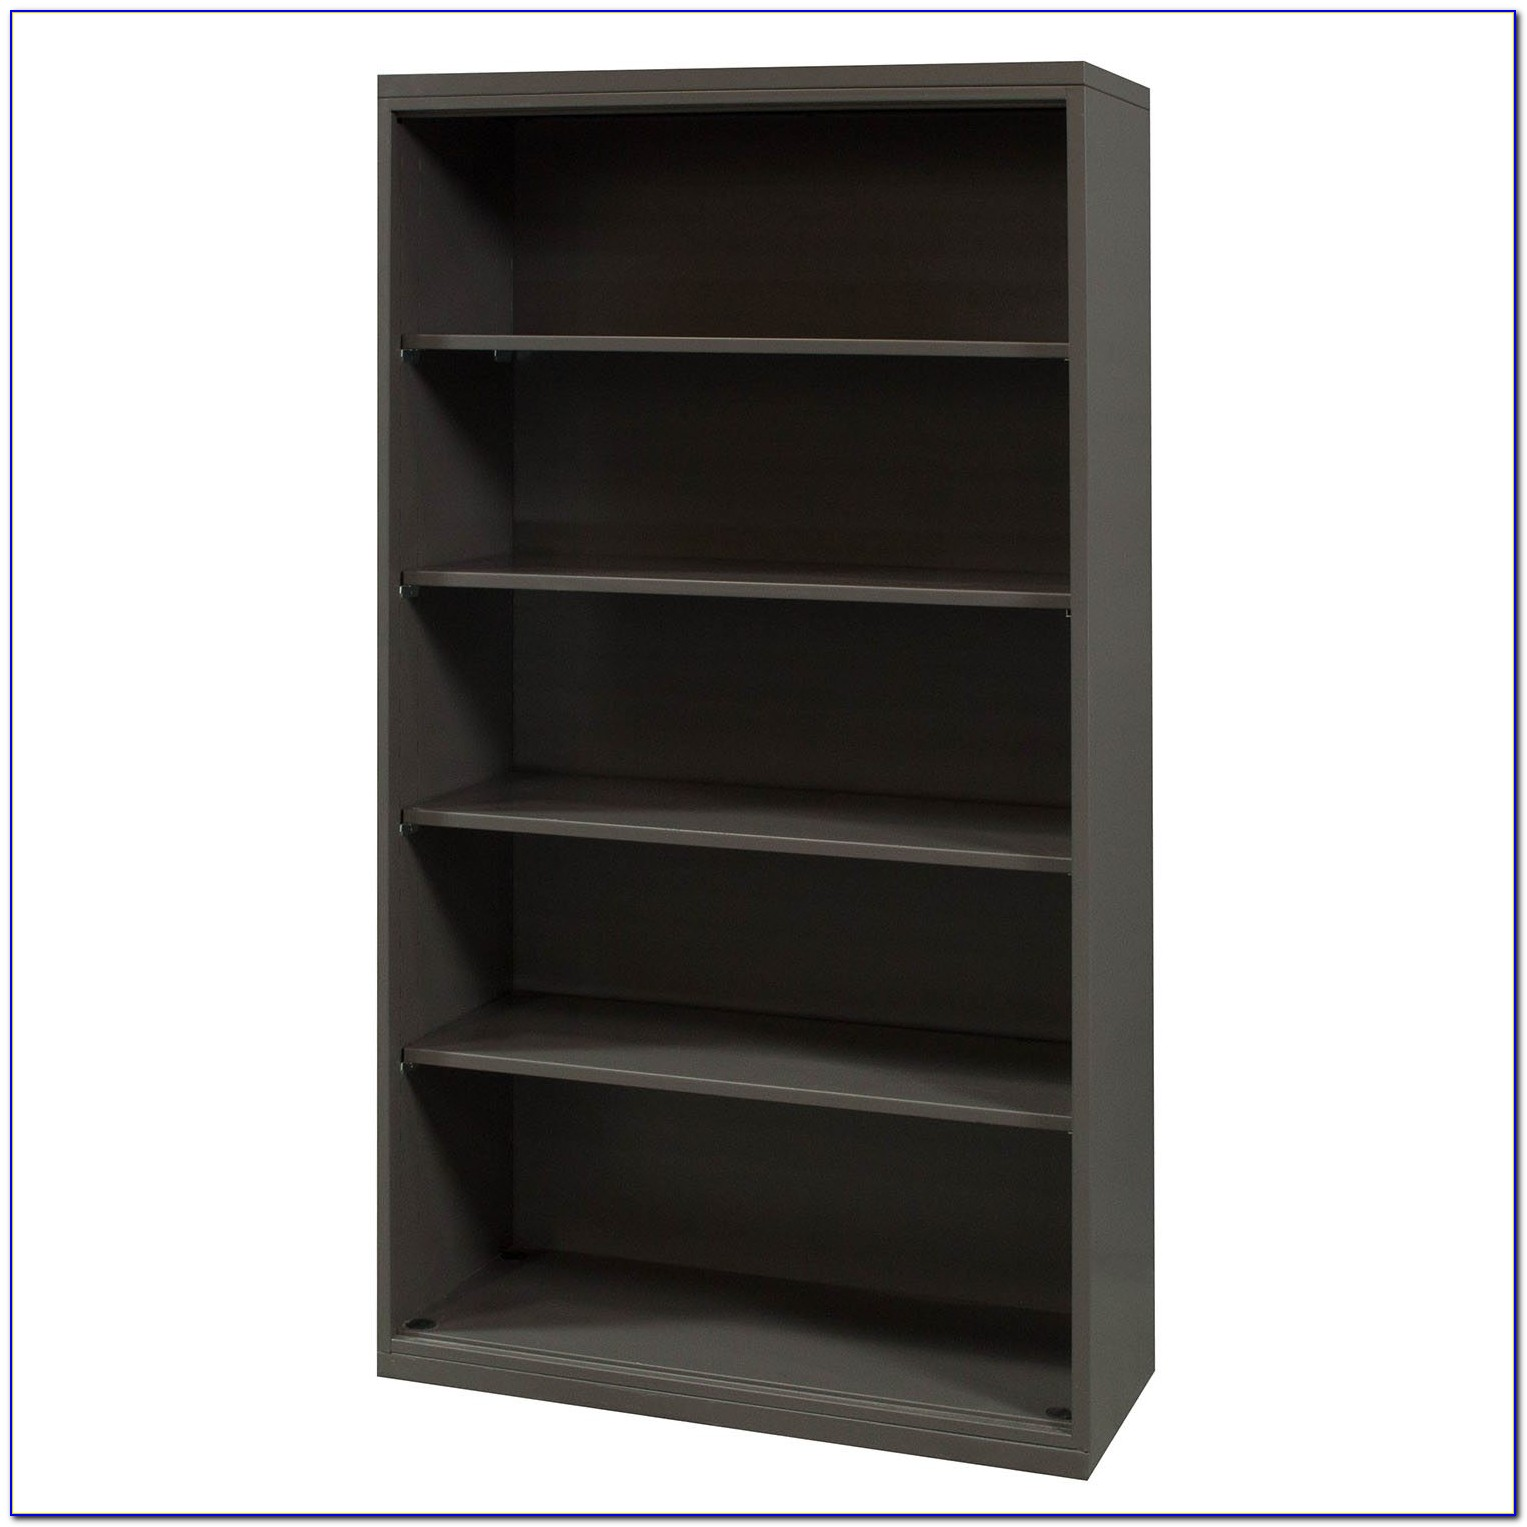 Herman Miller Bookshelves